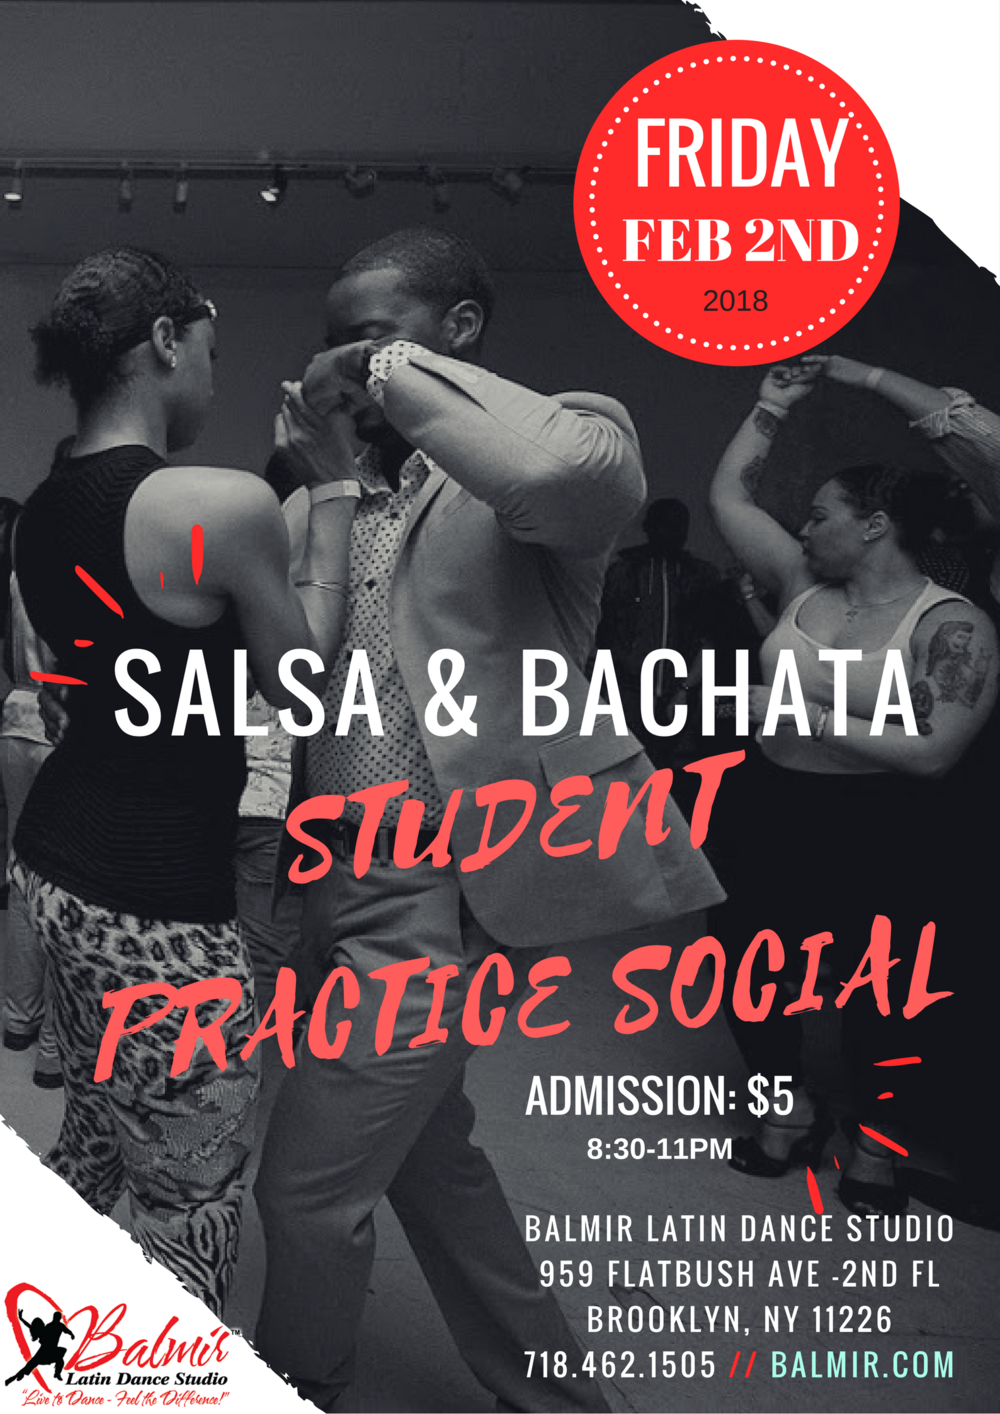 FEB 2ND BALMIR LATIN DANCE STUDIO SALSA BACHATA PRACTICE.png